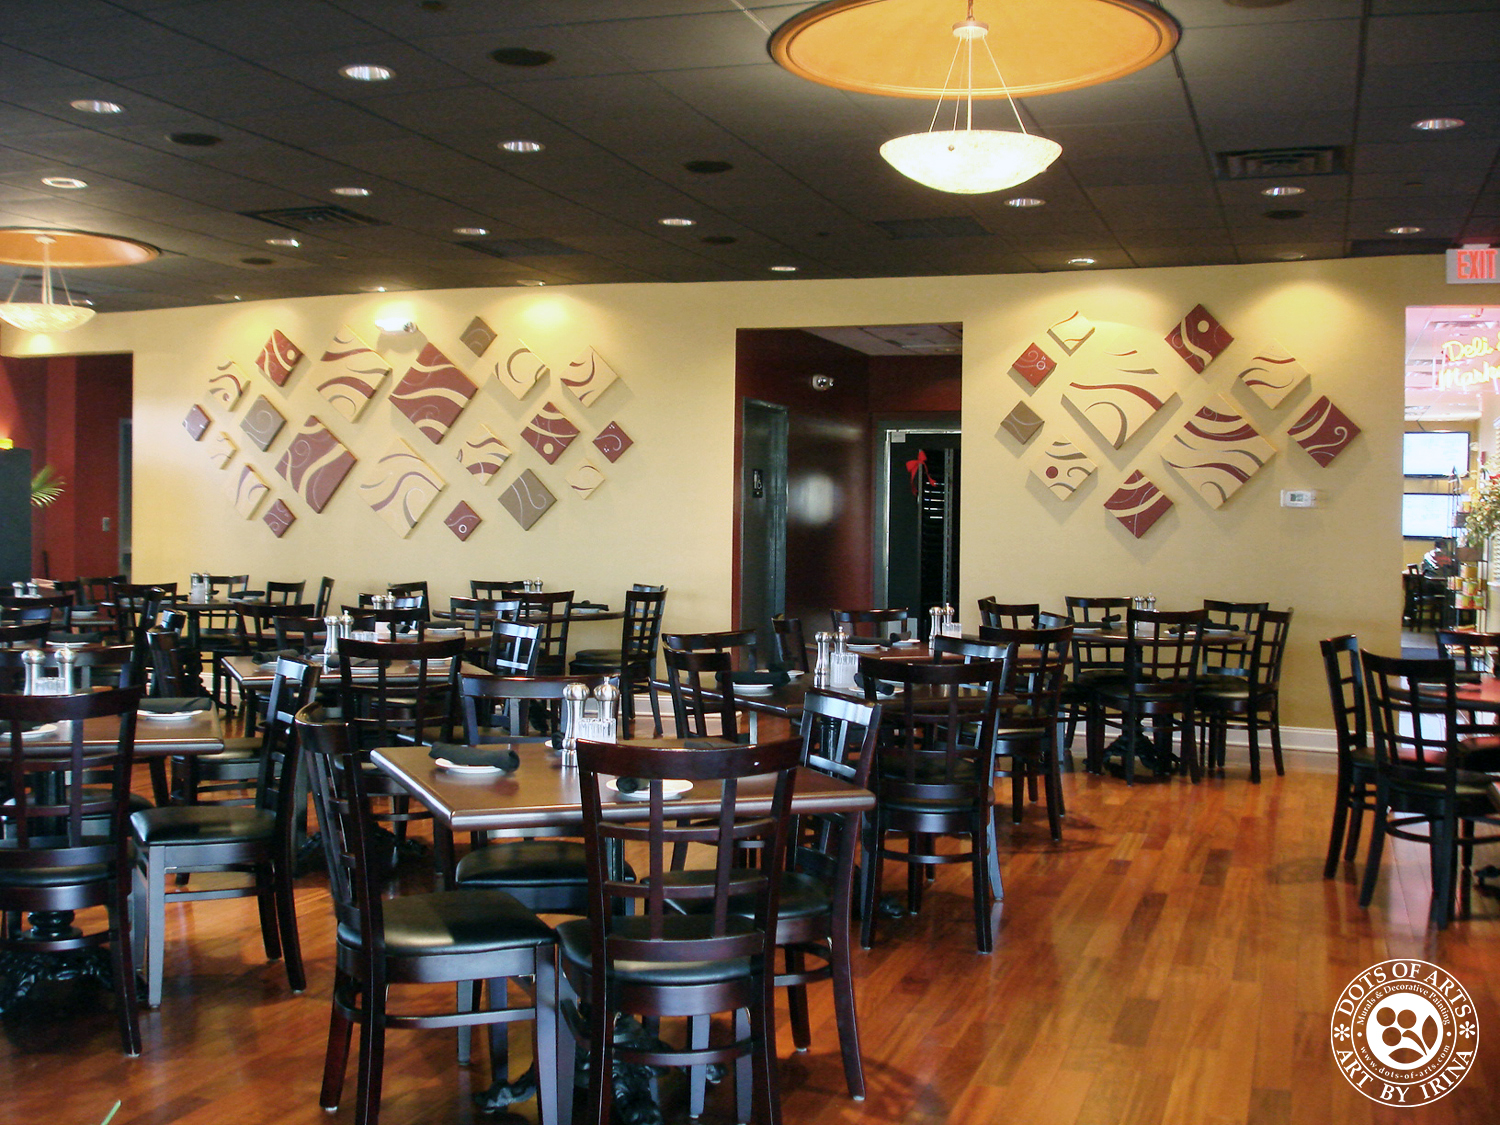 murals-nj-commercial-wall-decor-canvases-decorative-painting-restaurant-custom-color-dots-of-arts-05.jpg